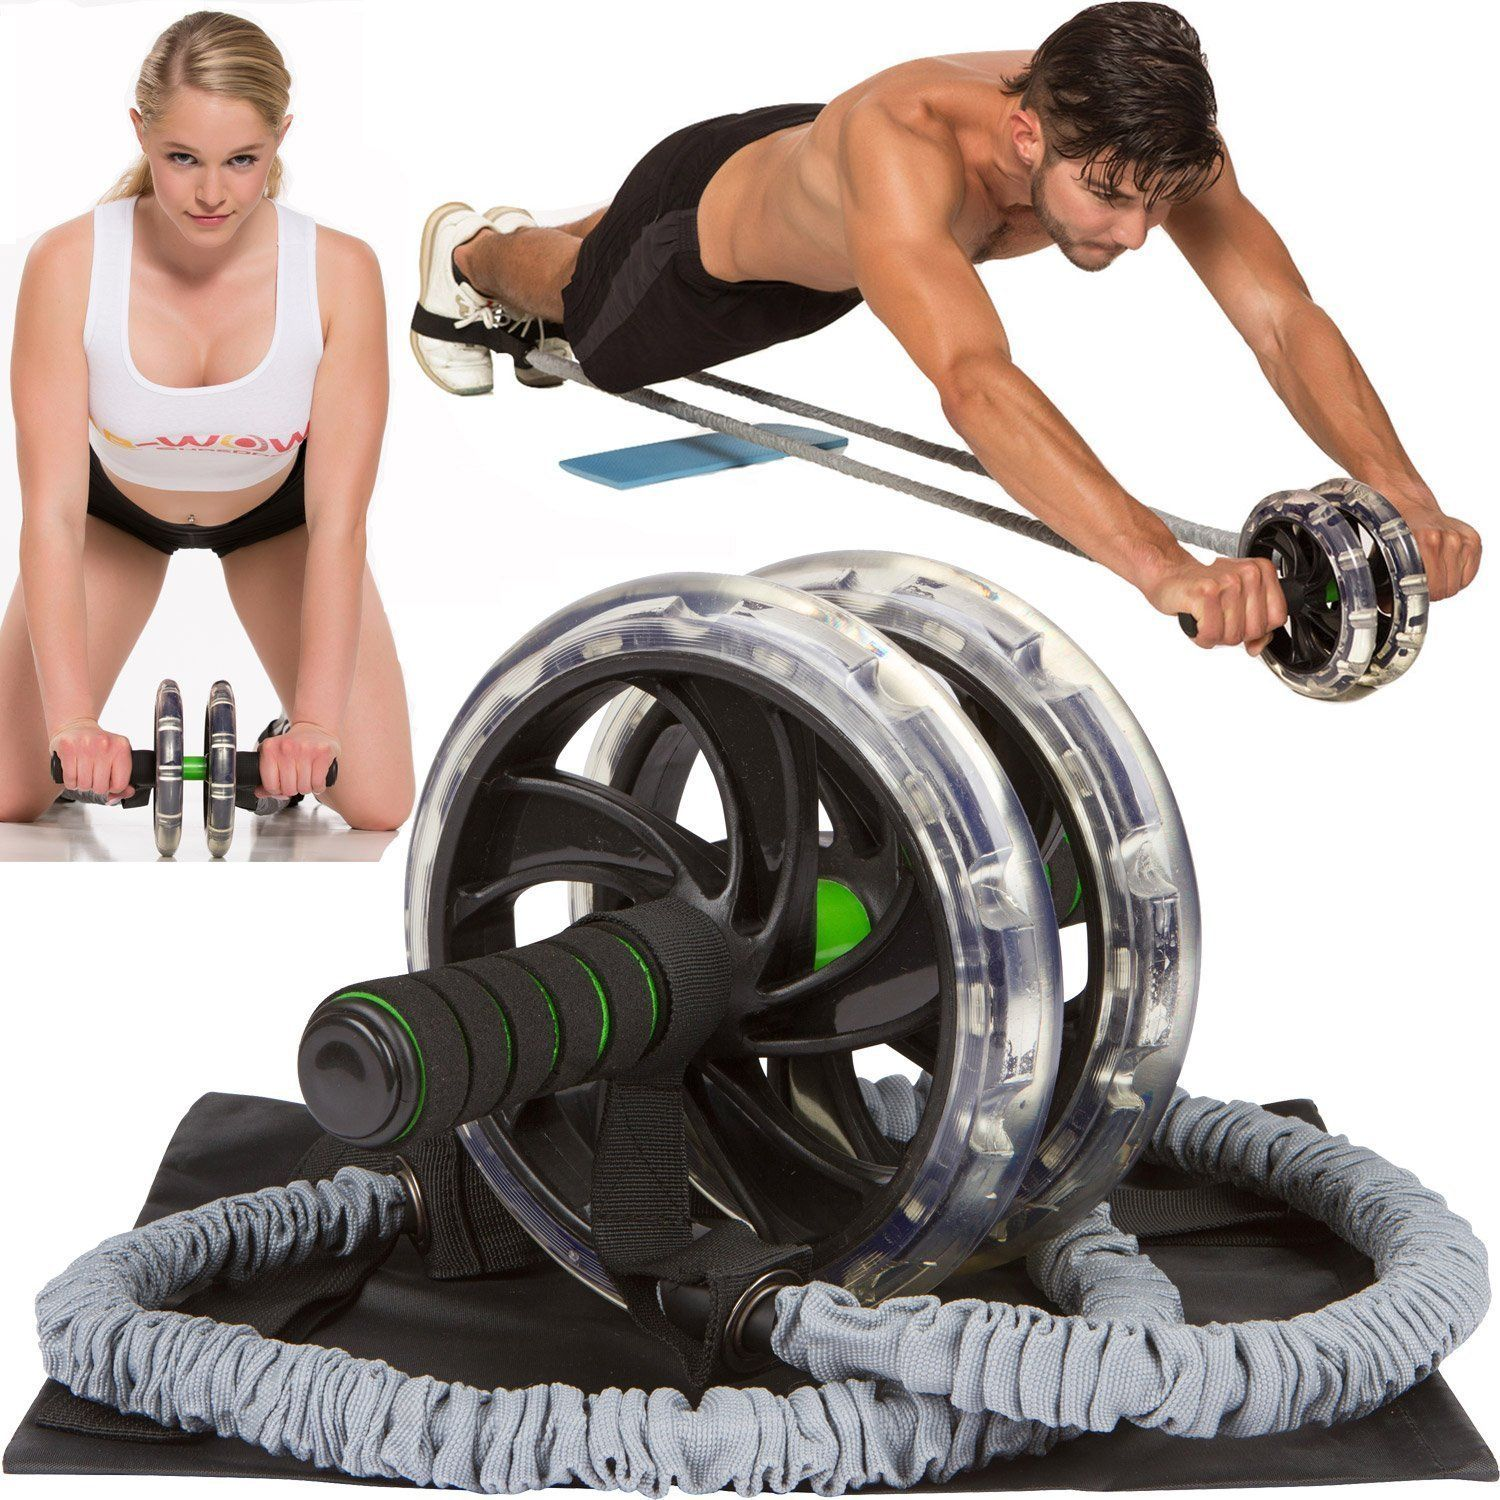 Pro Roller Ab Carver Fitness Exerciser Wheel Workout Abdominal Core Home Gym Pad